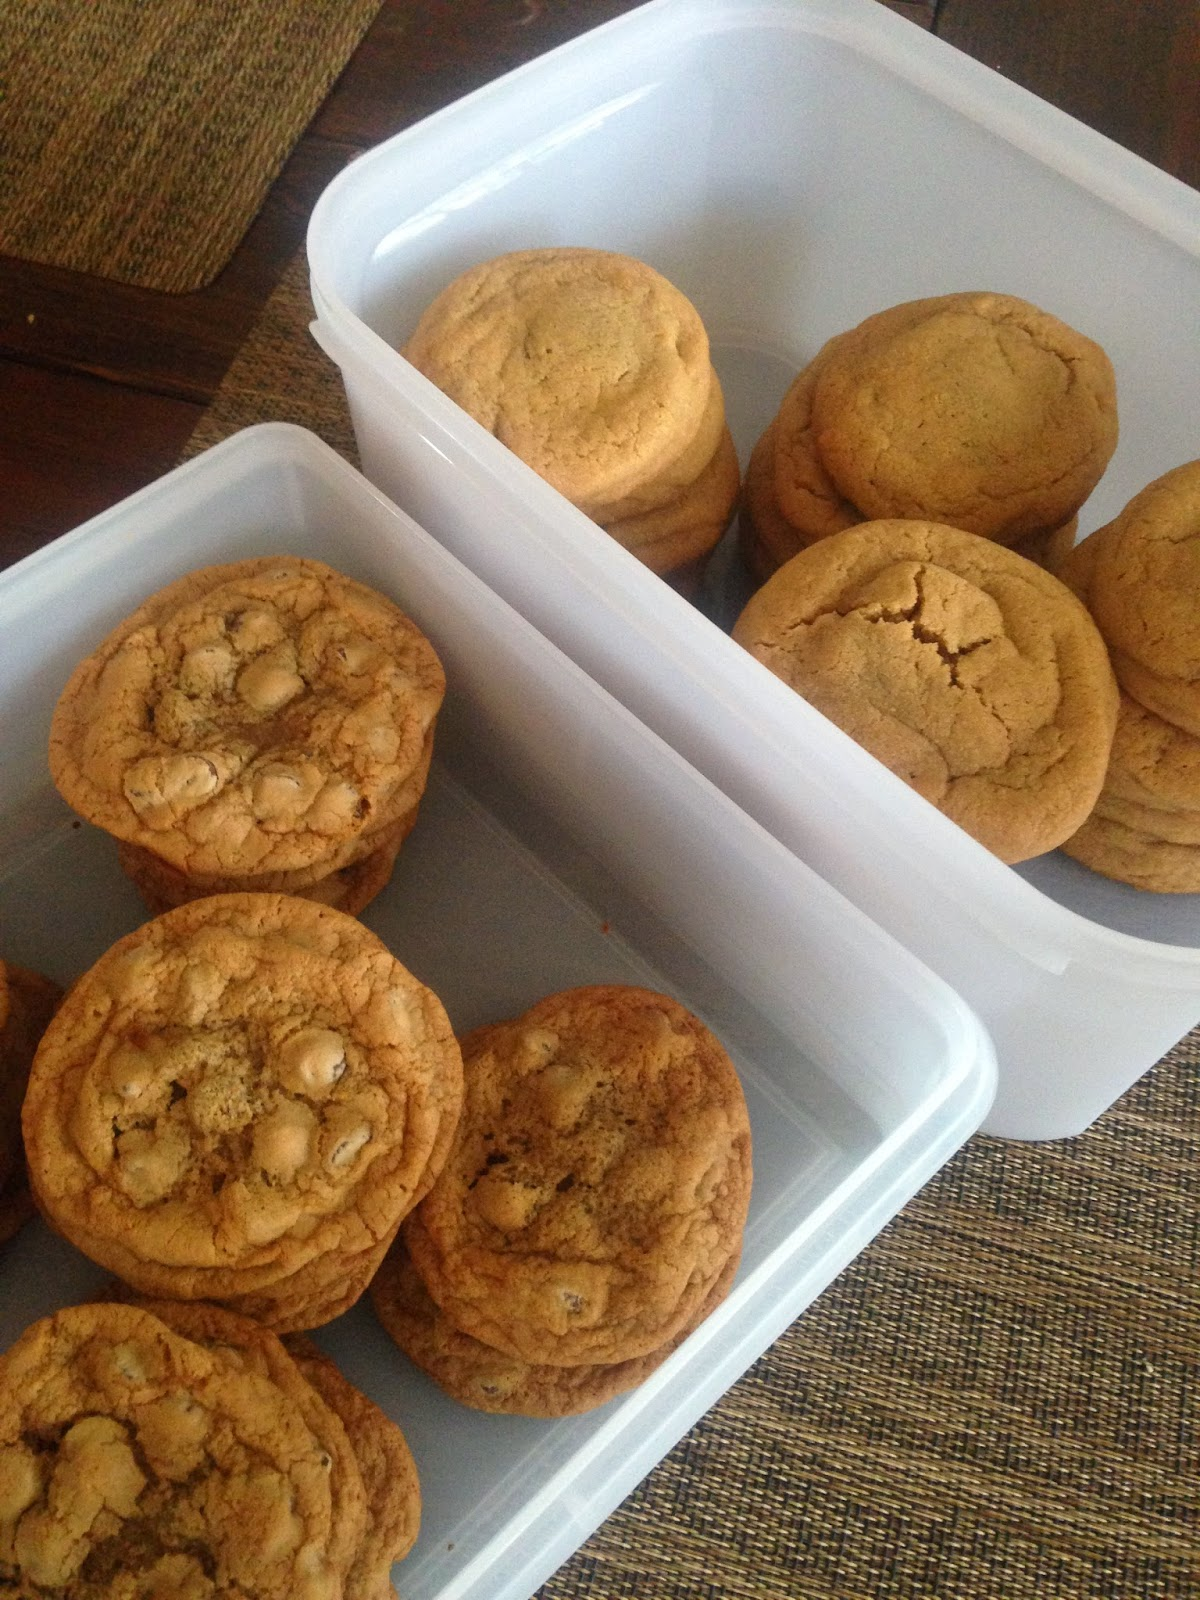 http://teaching-in-oz.blogspot.com/2014/06/eating-drinking-linking-cookies.html